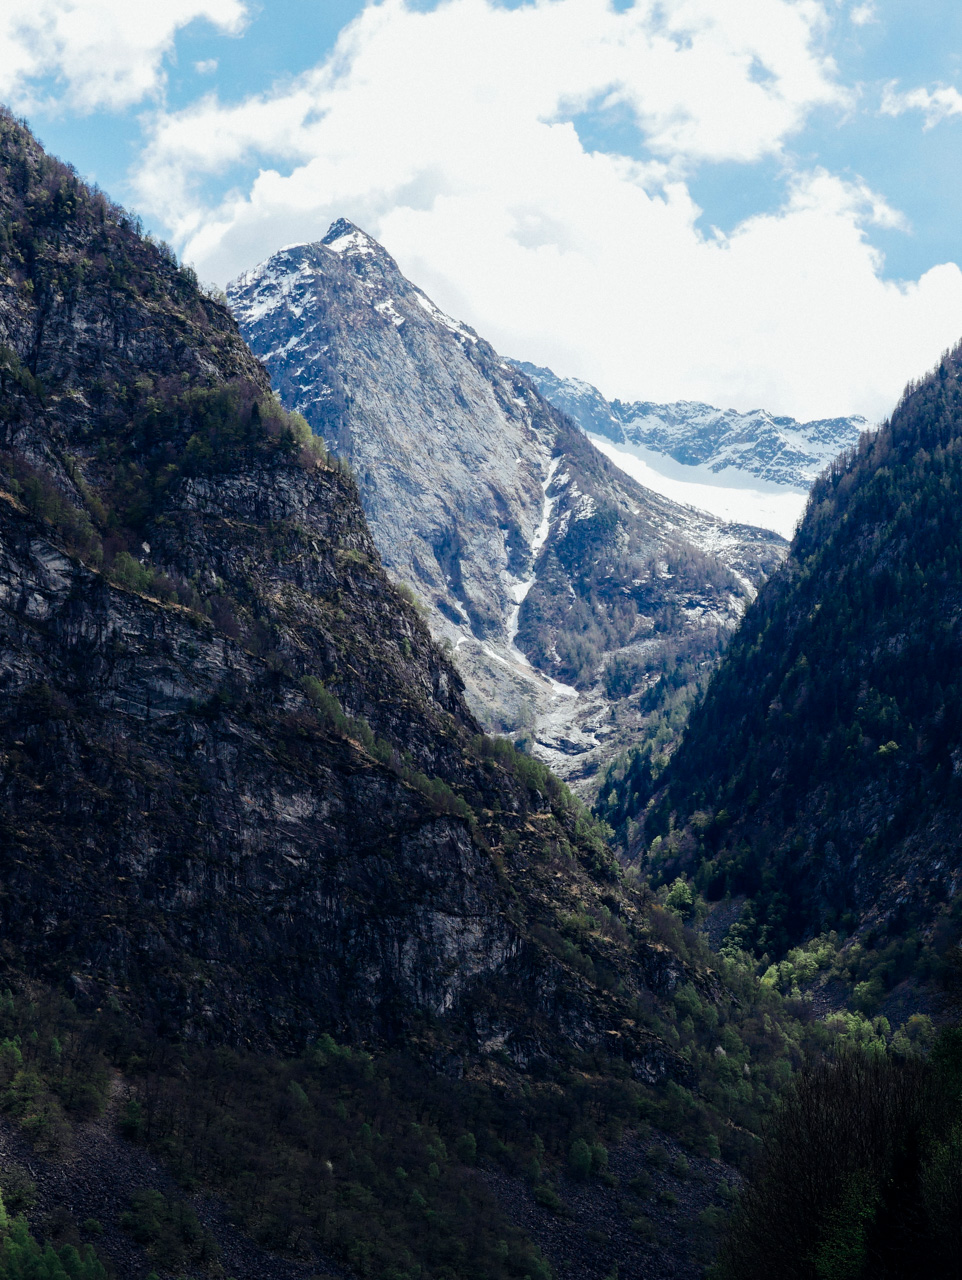 One of the mountains at Valle Maggia.